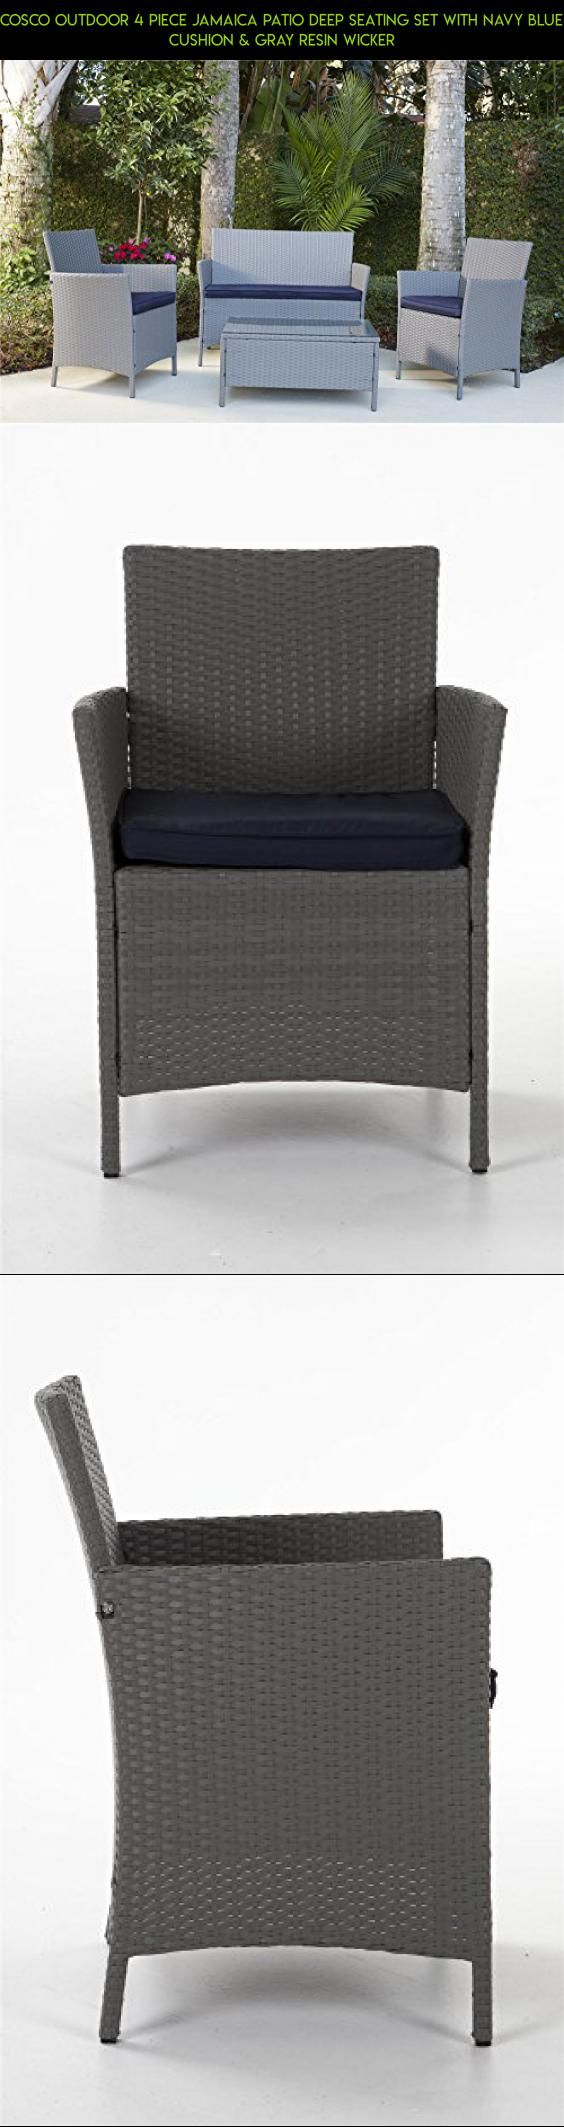 cosco outdoor 4 piece jamaica patio deep seating set with navy blue cushion u0026 gray resin - Resin Wicker Patio Furniture